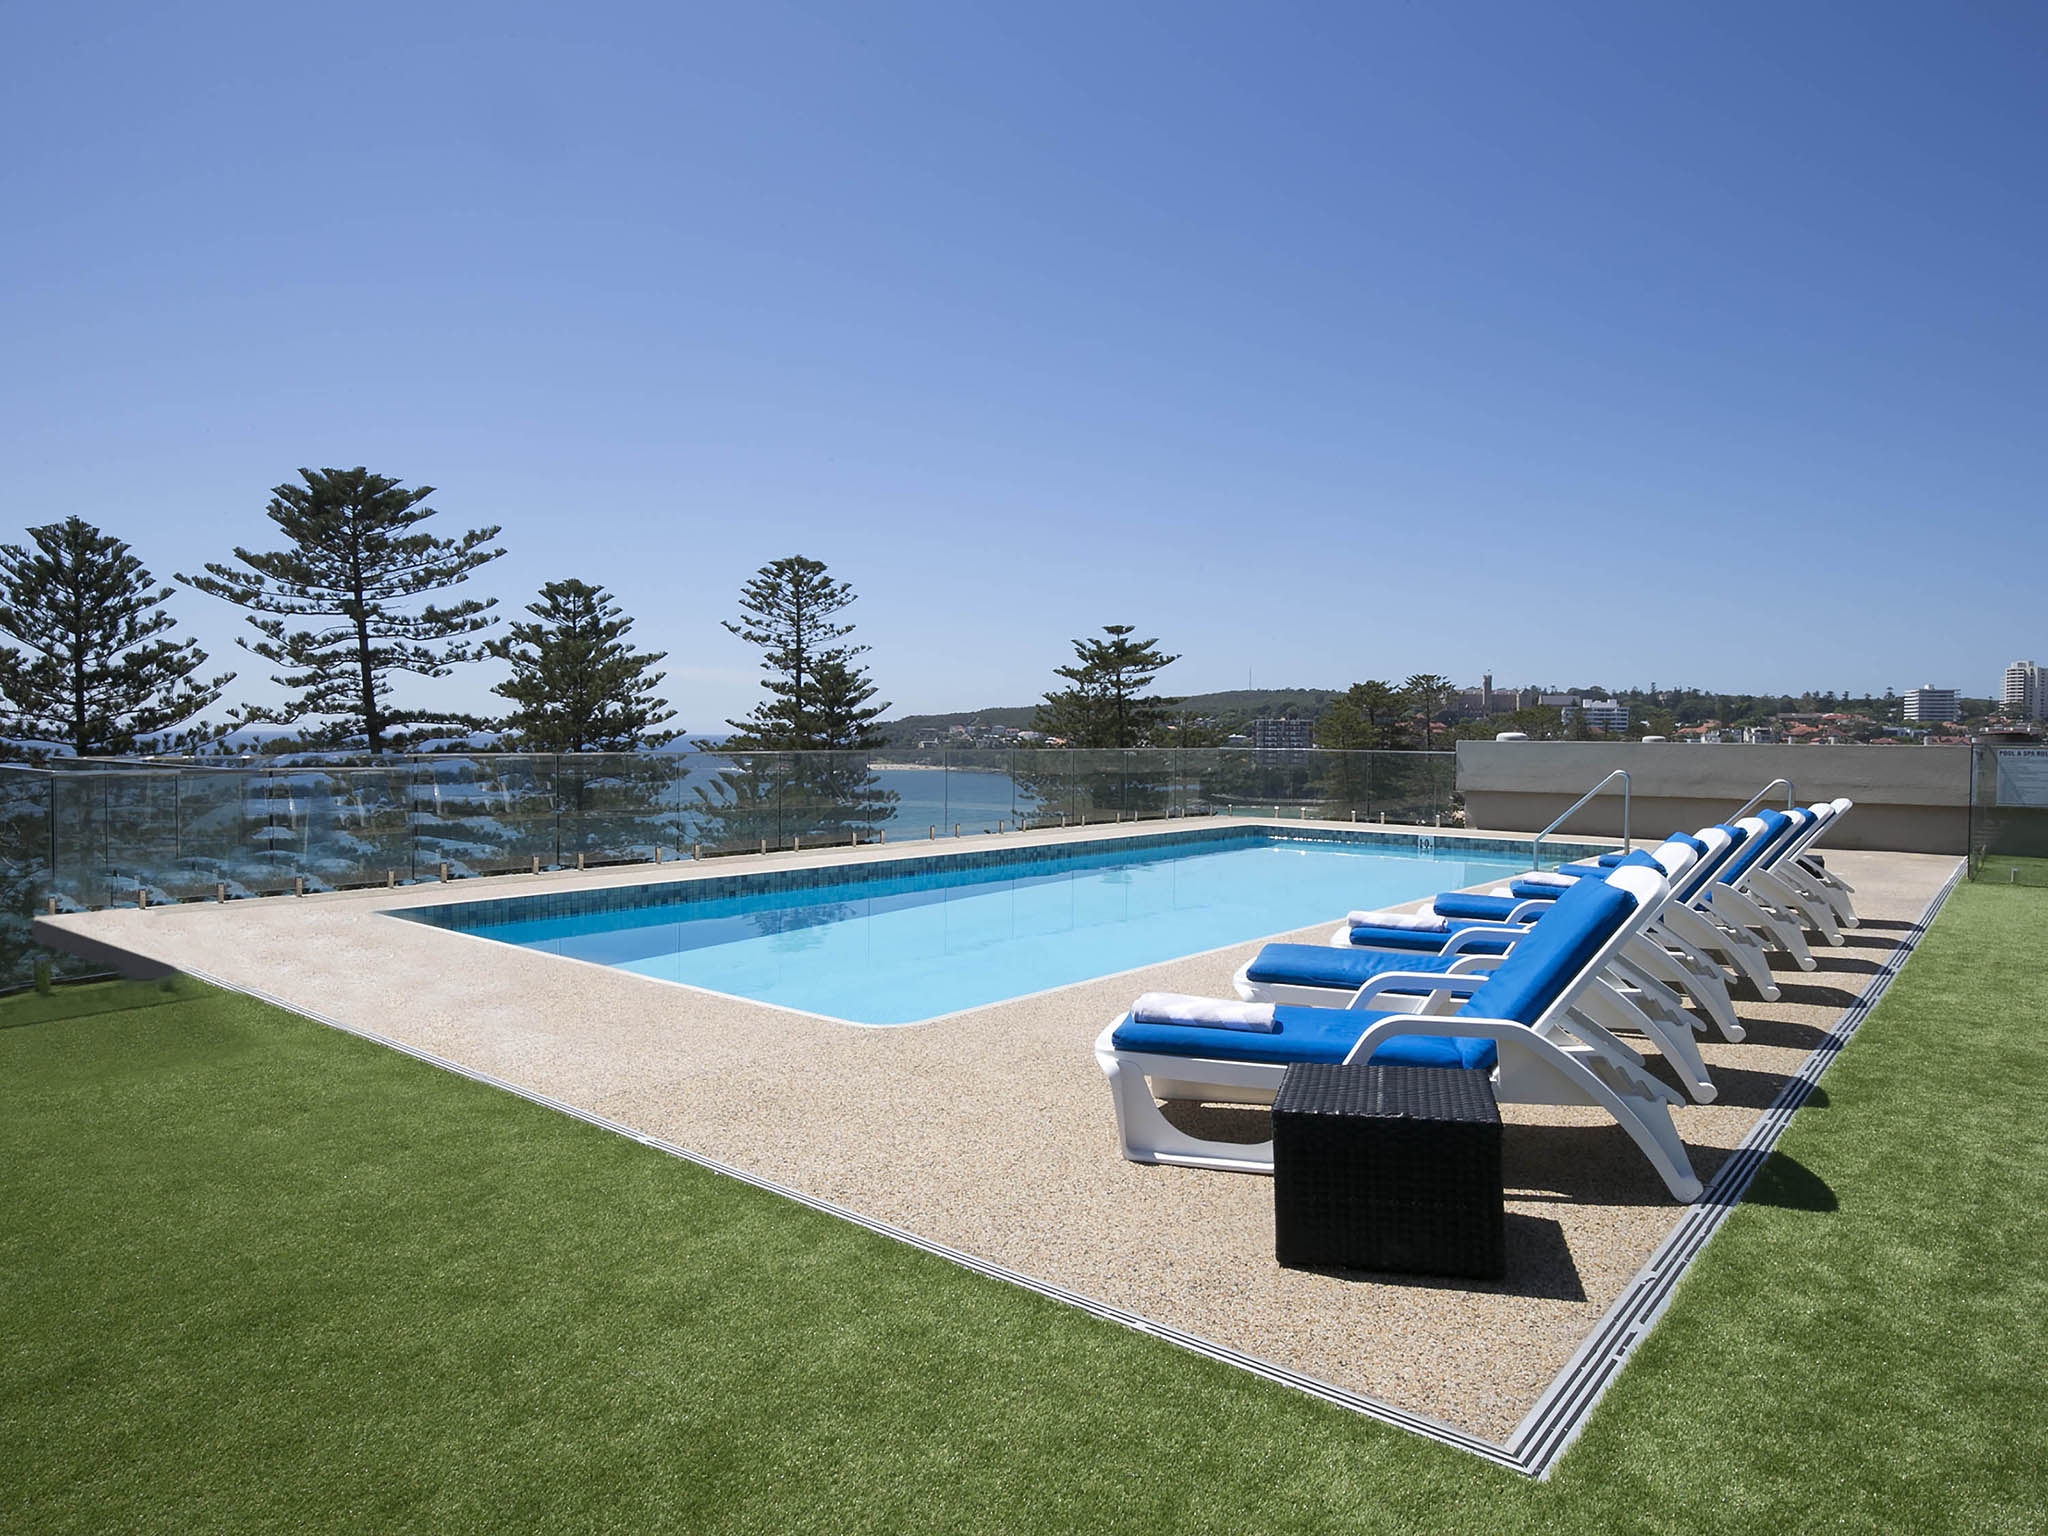 Manly Pacific Sydney Managed by Novotel Ontspanningscentrum